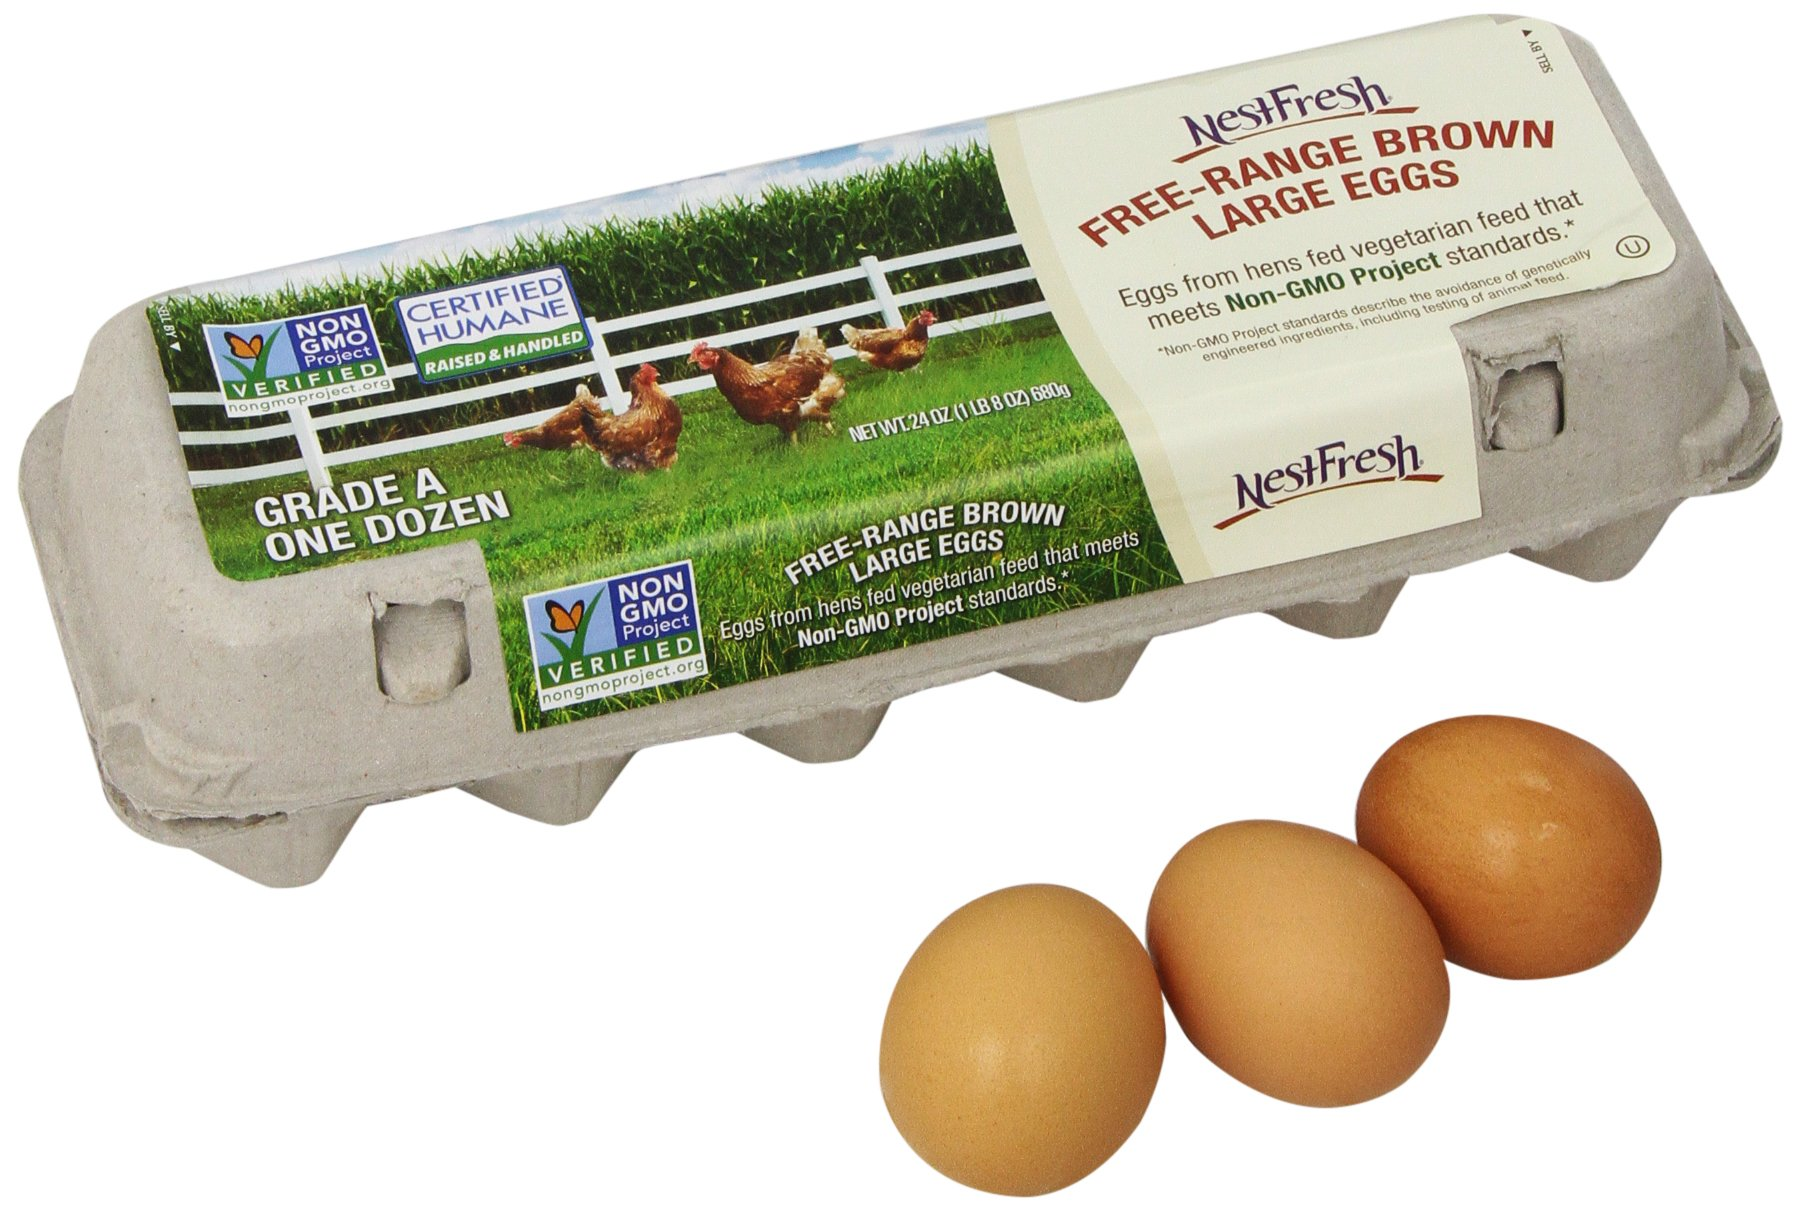 NestFresh Free Range Non-GMO Large Grade A Eggs, 12 ct